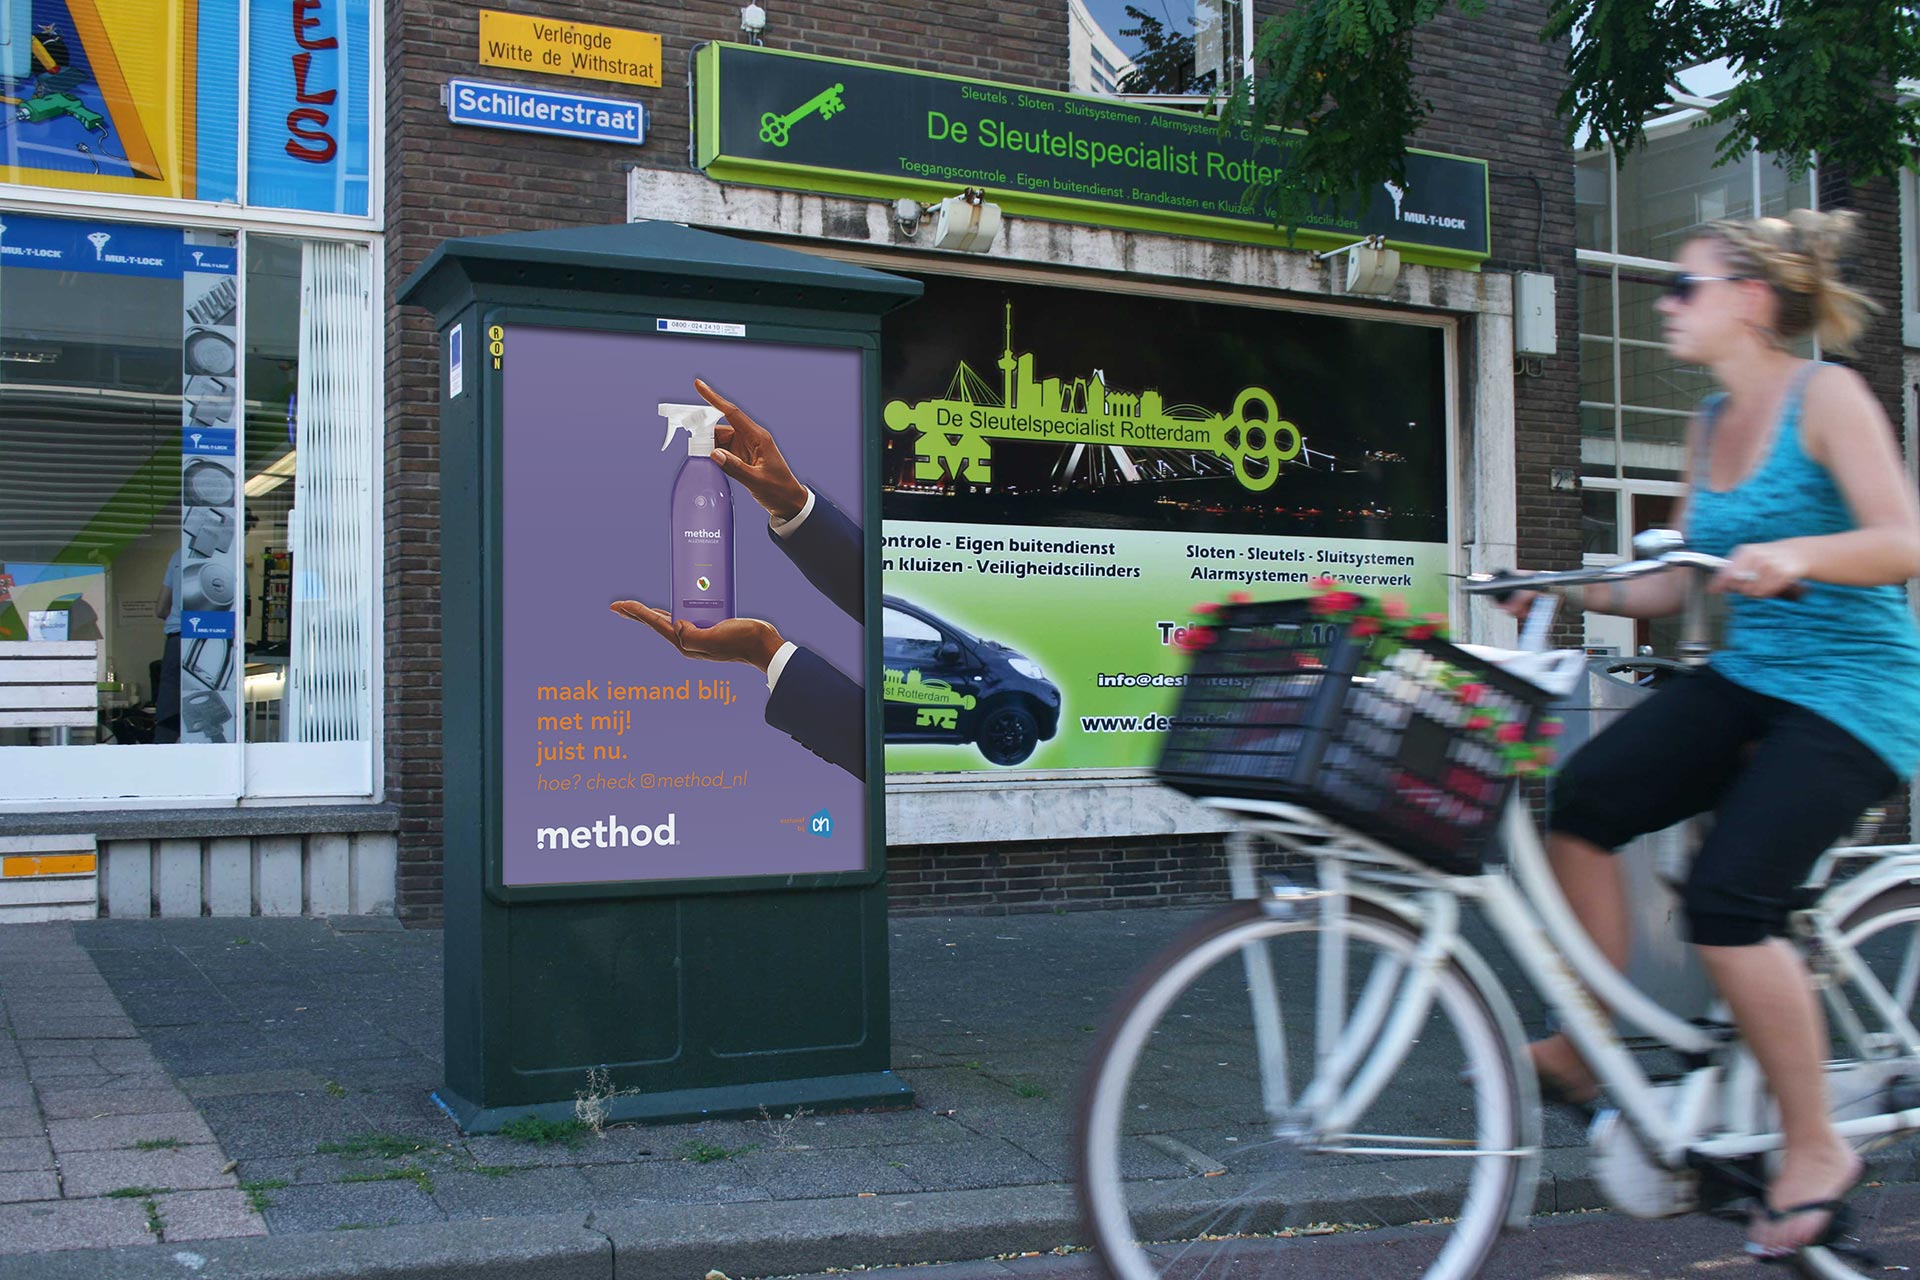 a0 frame reclame outdoor media rotterdam